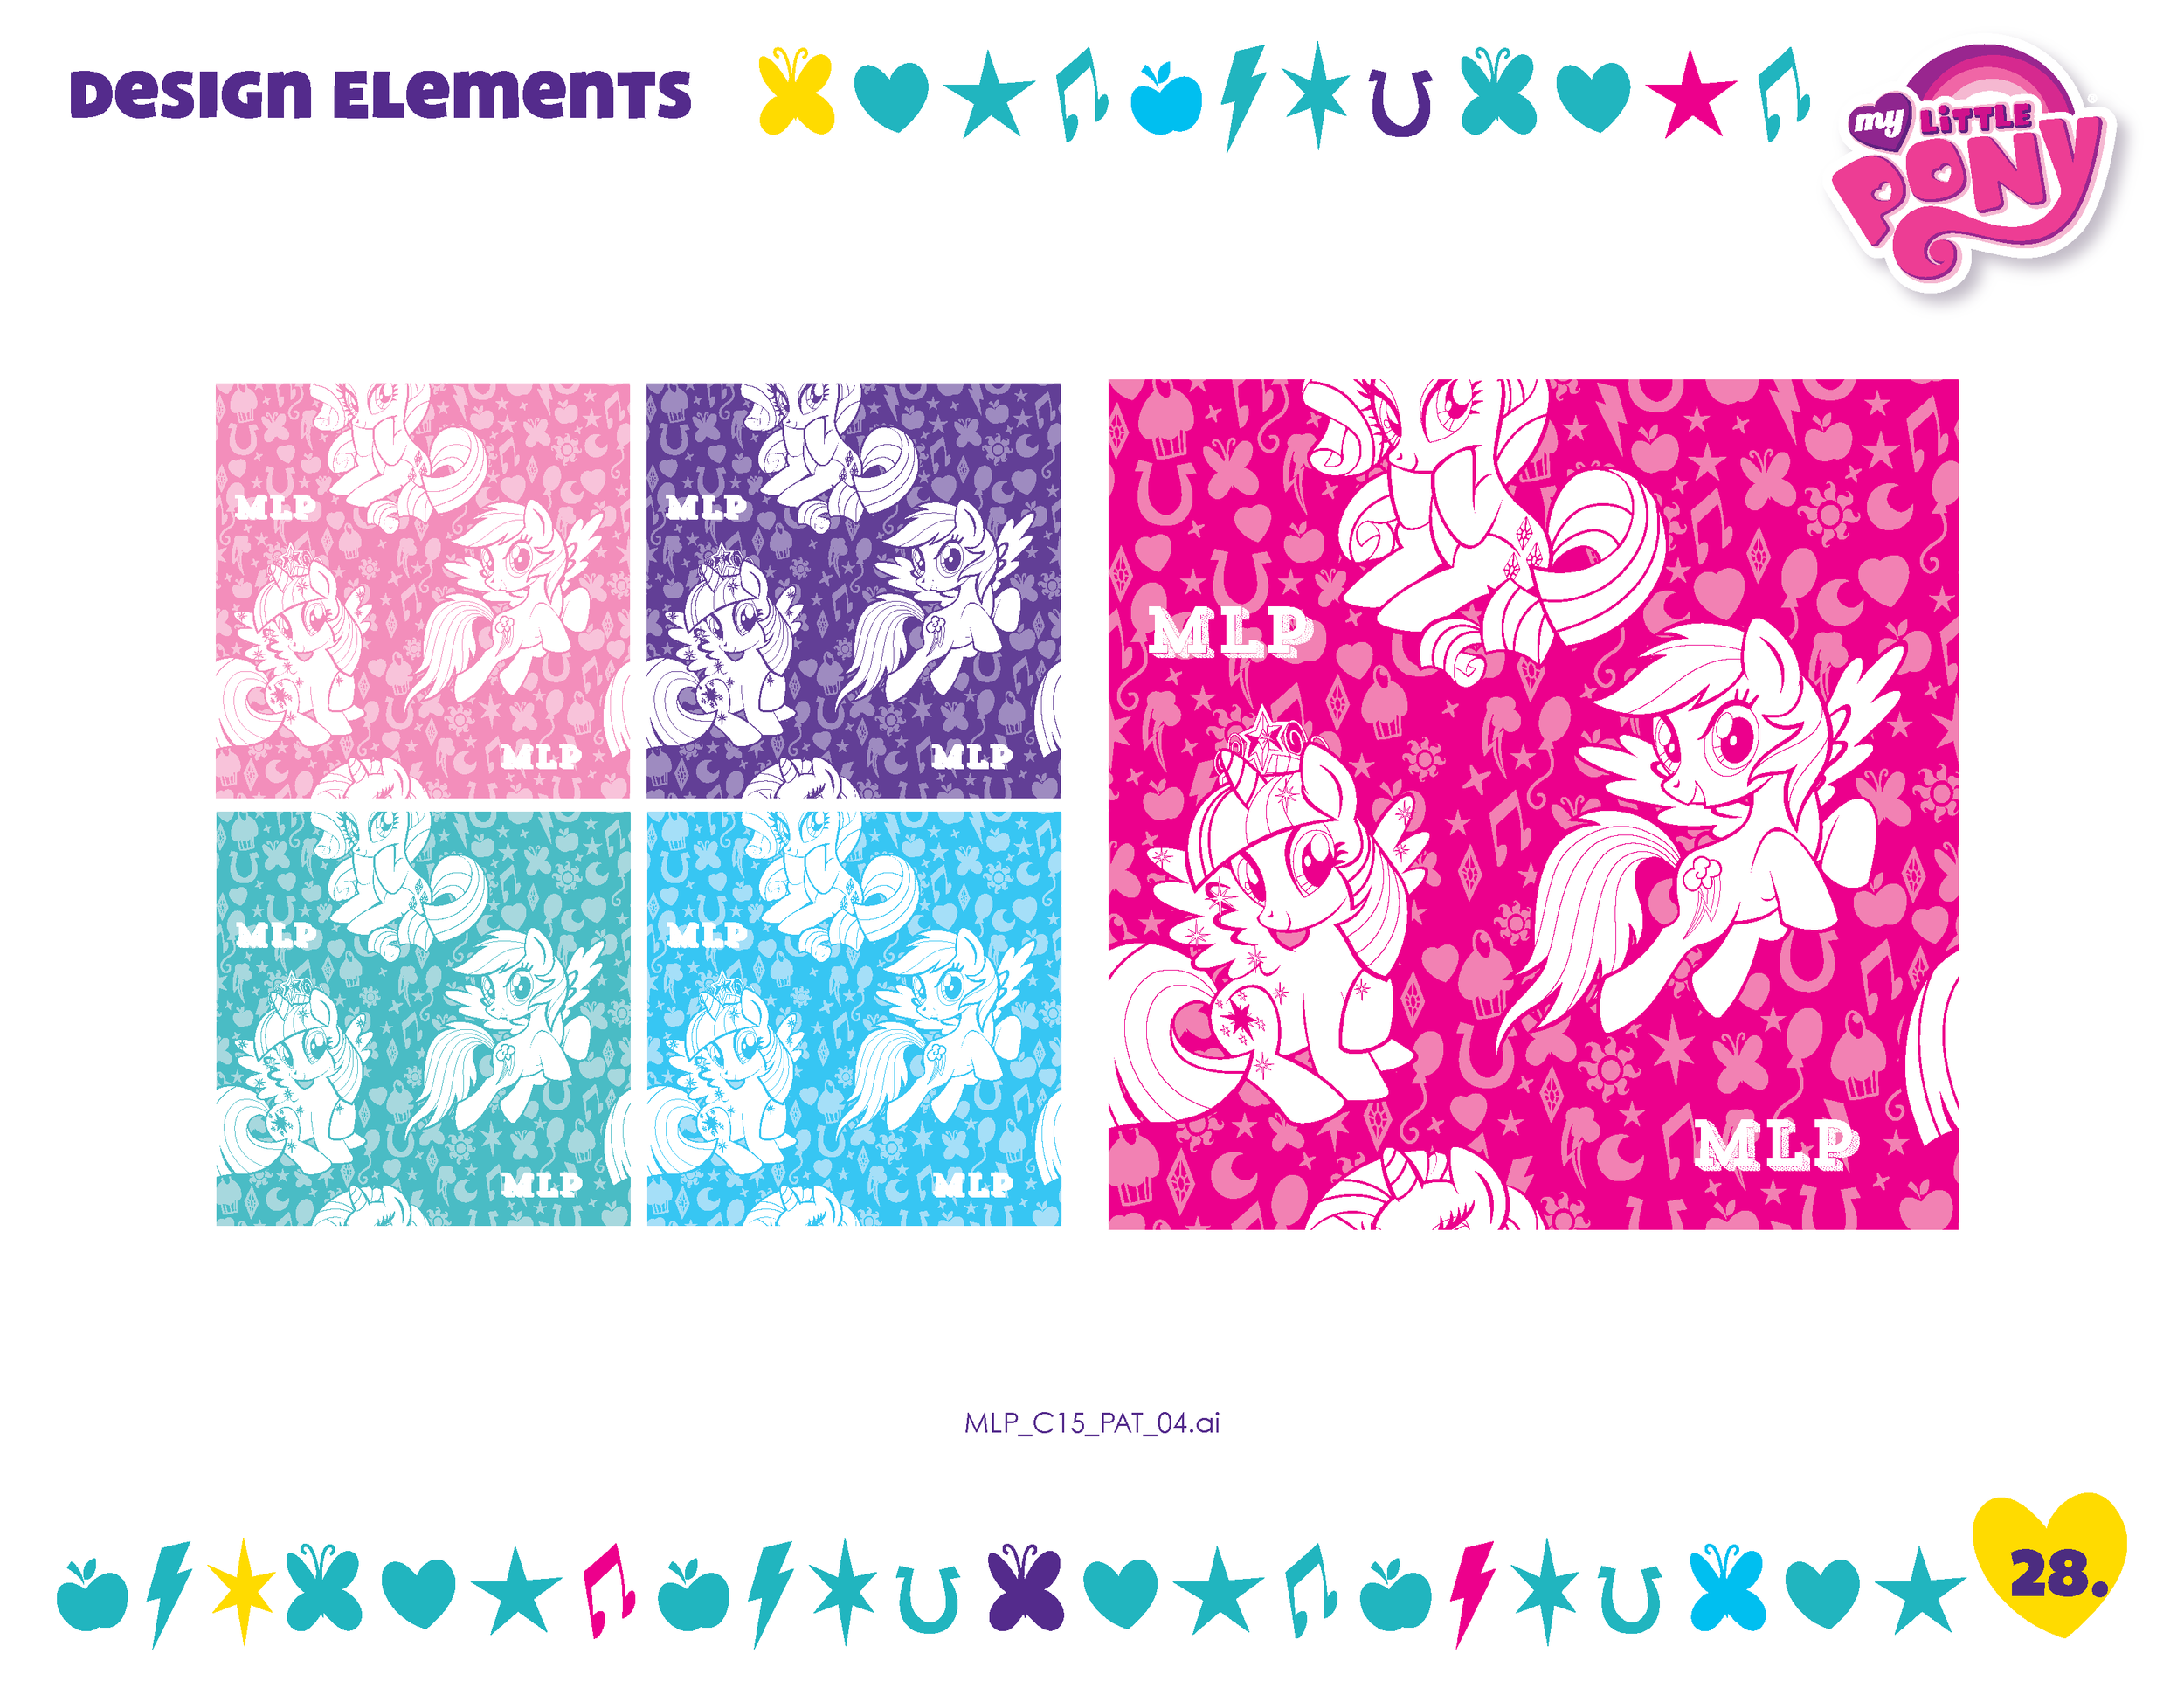 MLP Cutie Mark Core SS15 Style Guide_Page_28.png